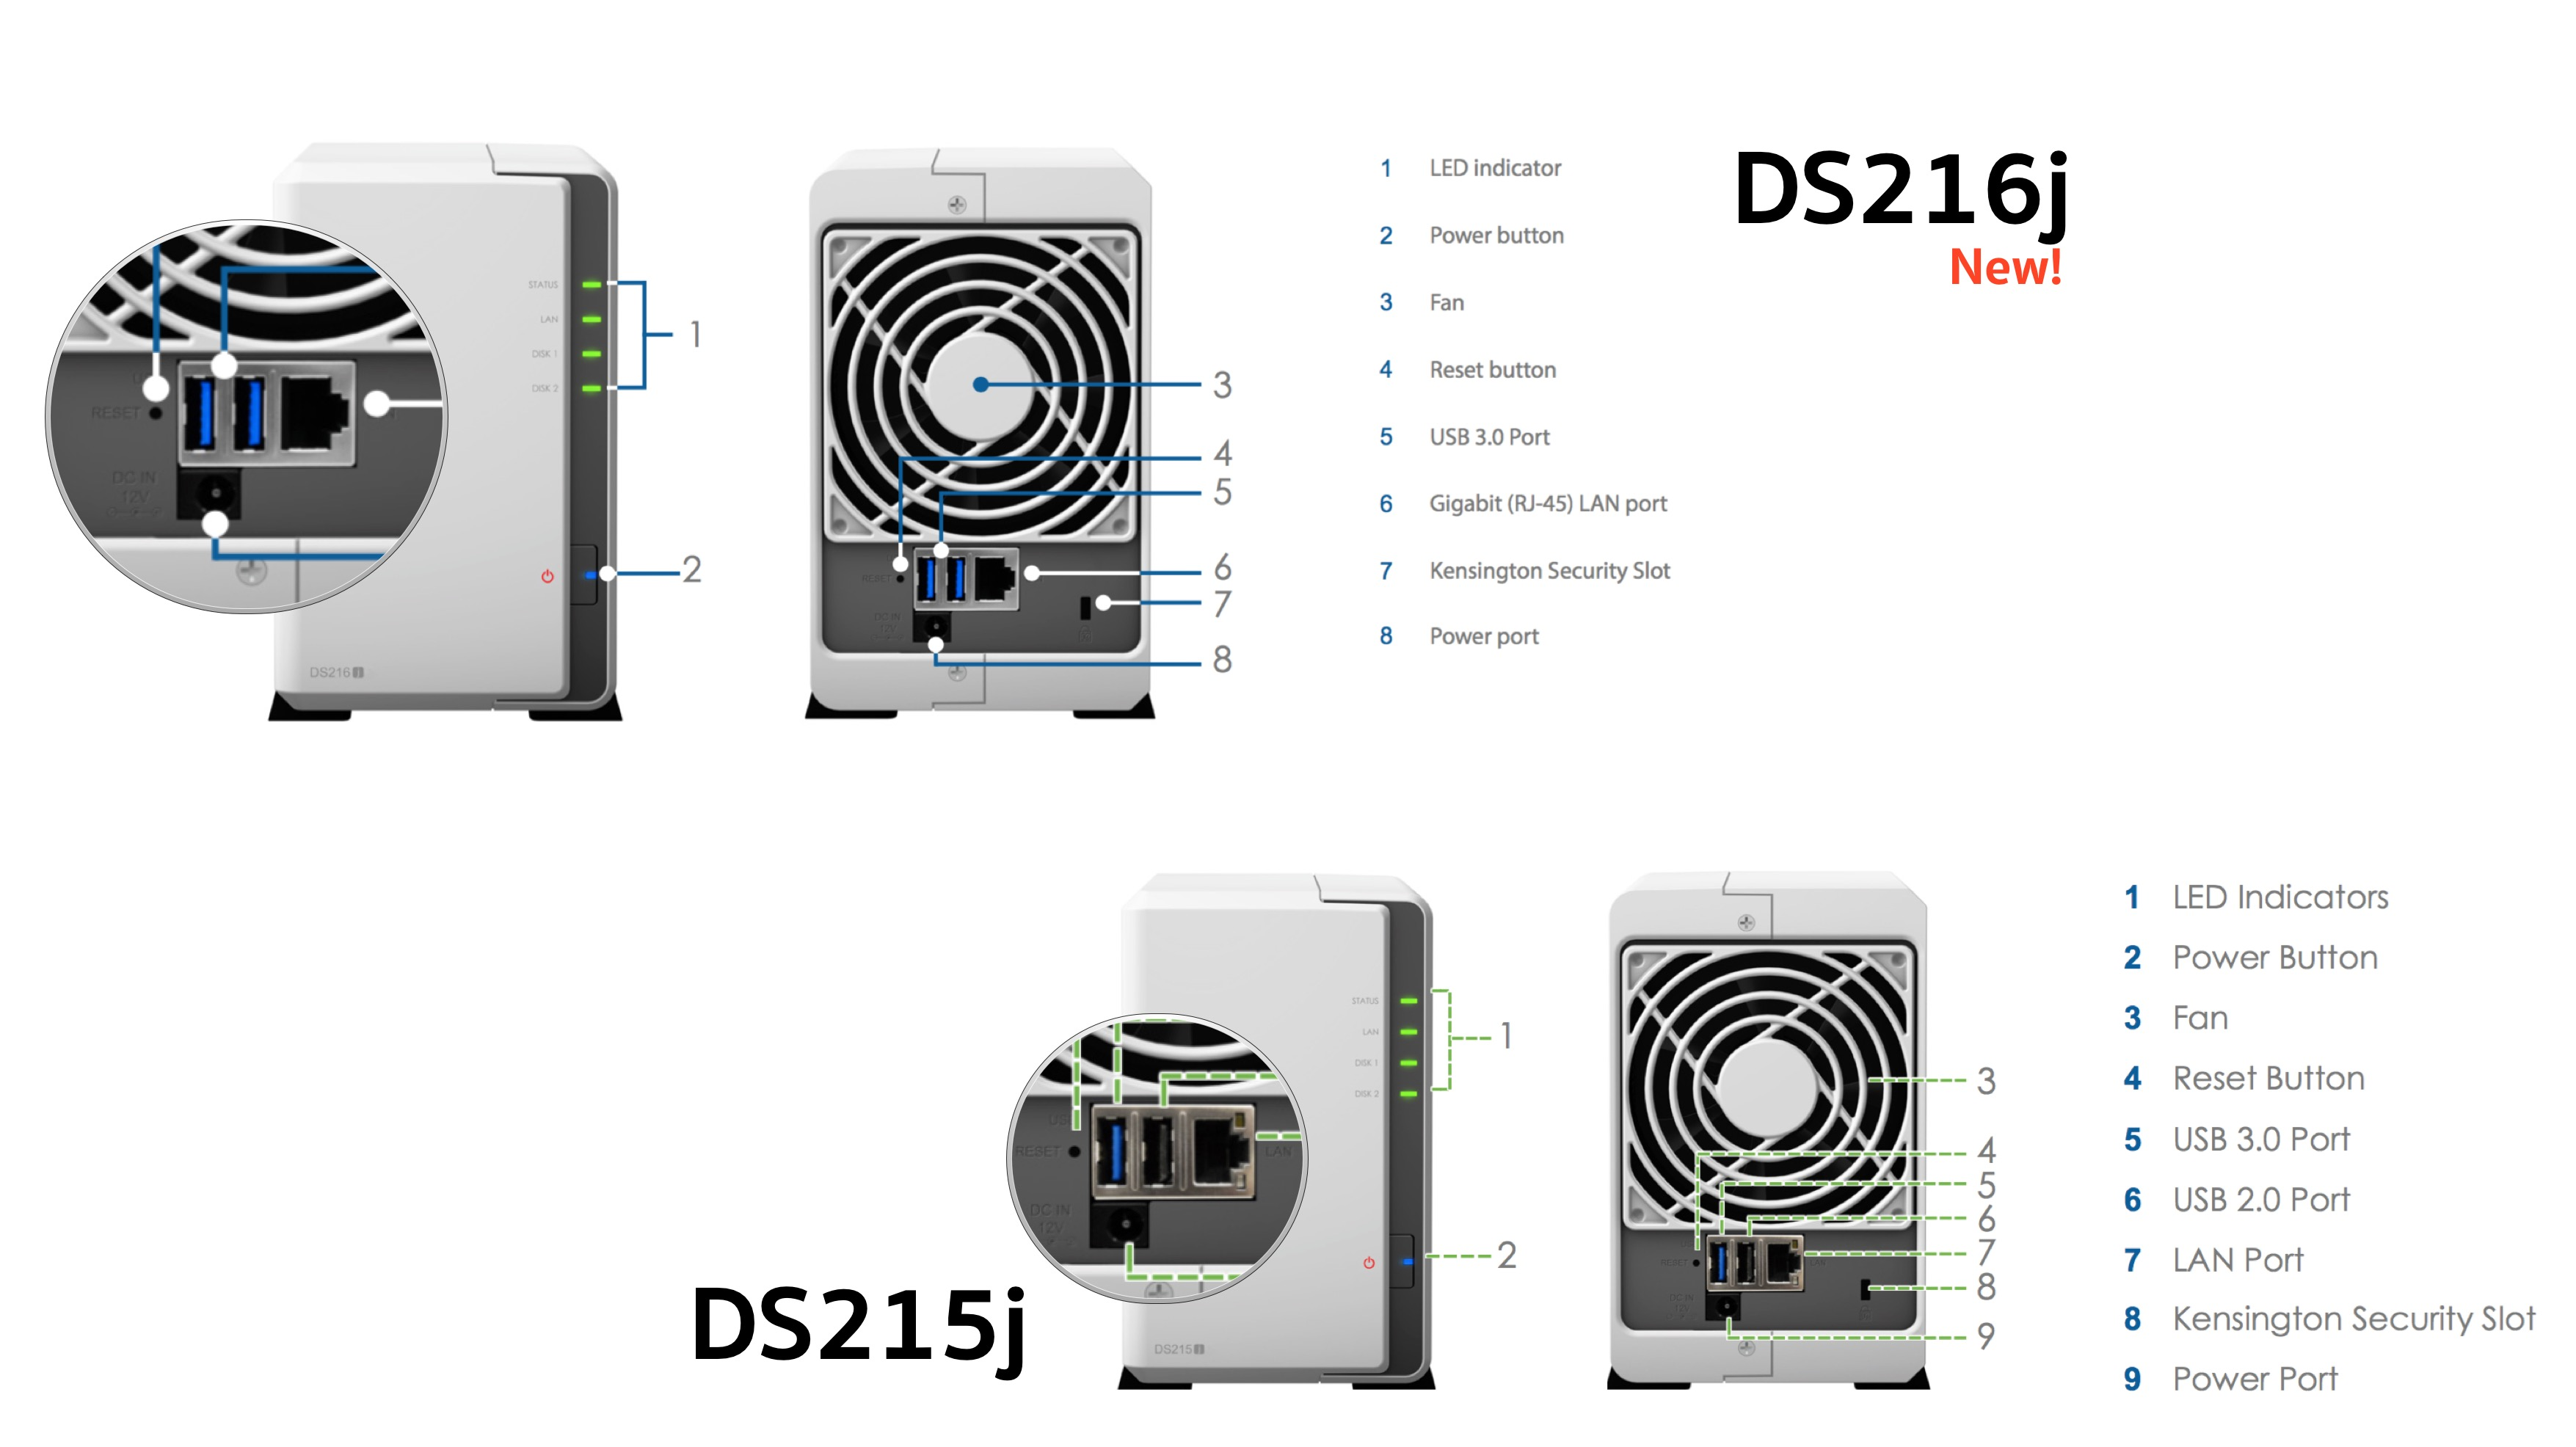 ds216j vs ds215j port